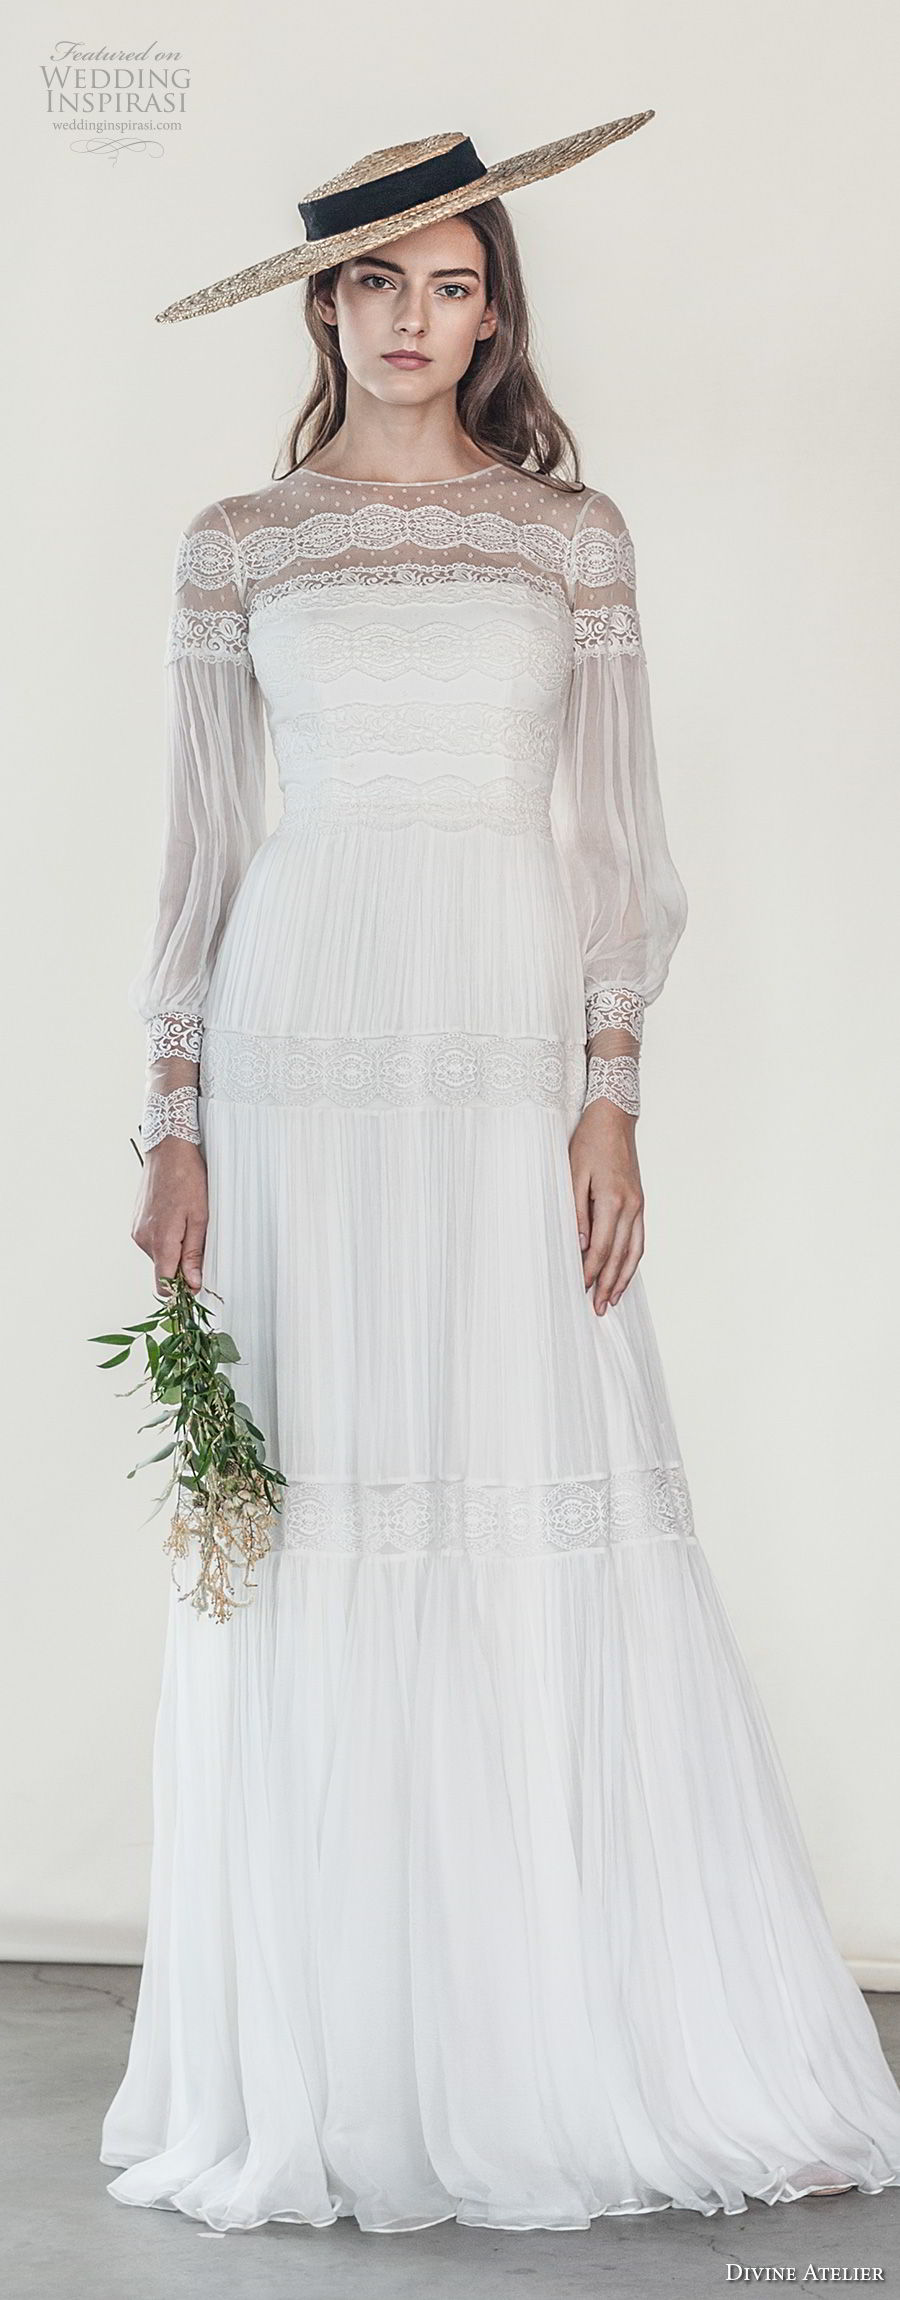 divine atelier 2018 bridal long sleeves illusion jewel straight across neckline light embellishment romantic bohemian soft a line wedding dress sweep train (2) lv